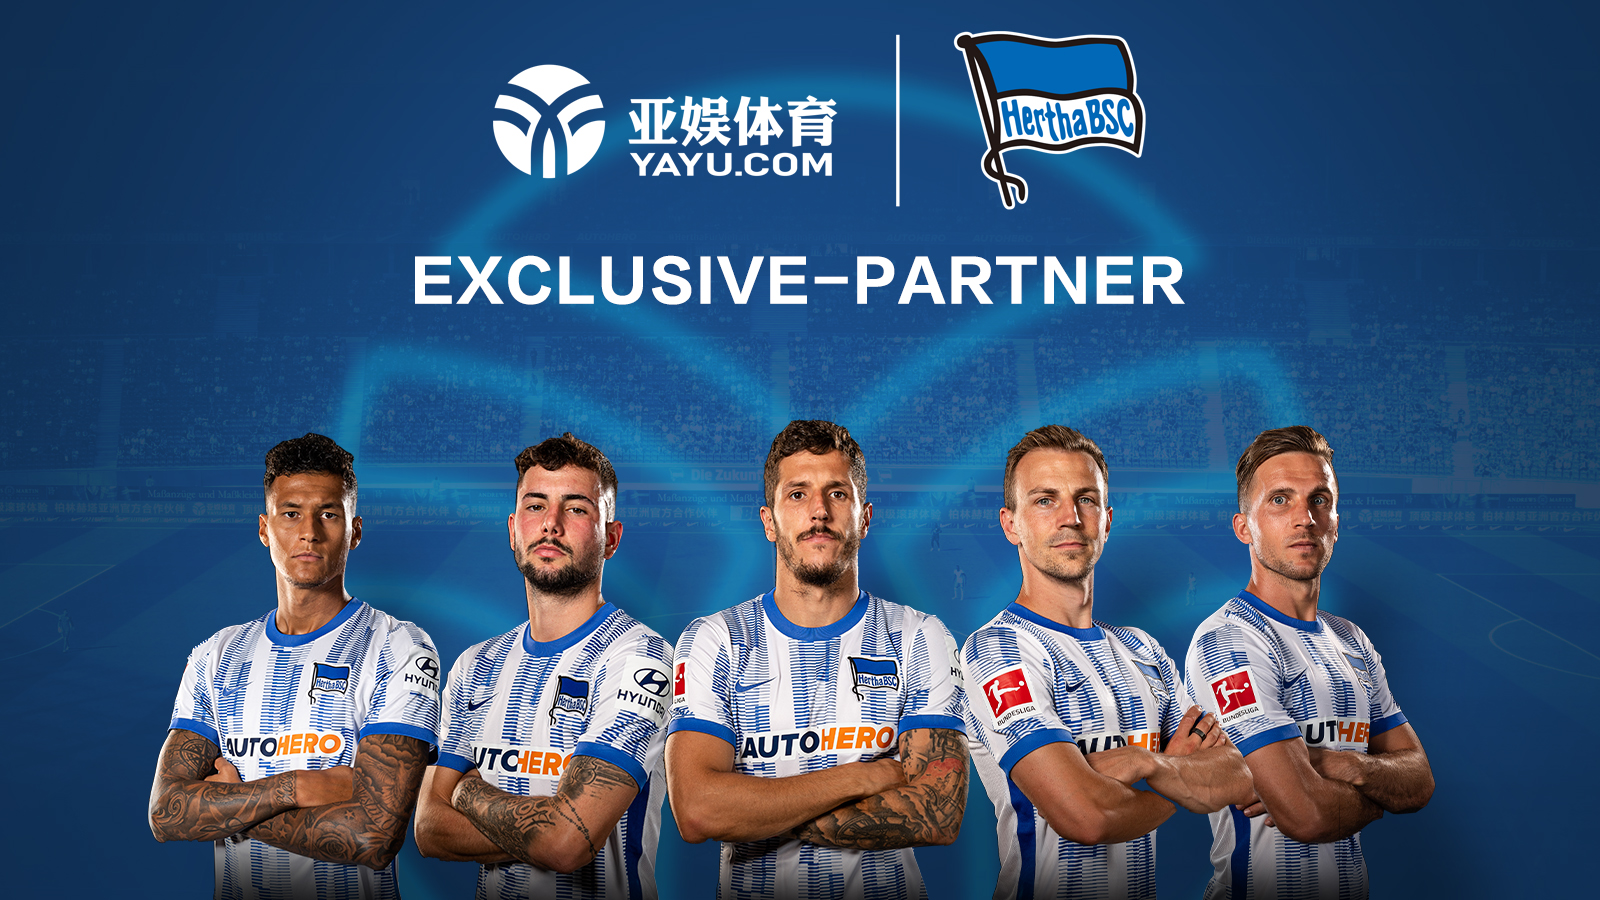 A graphic announcing the partnership between Yayu Sports and Hertha BSC